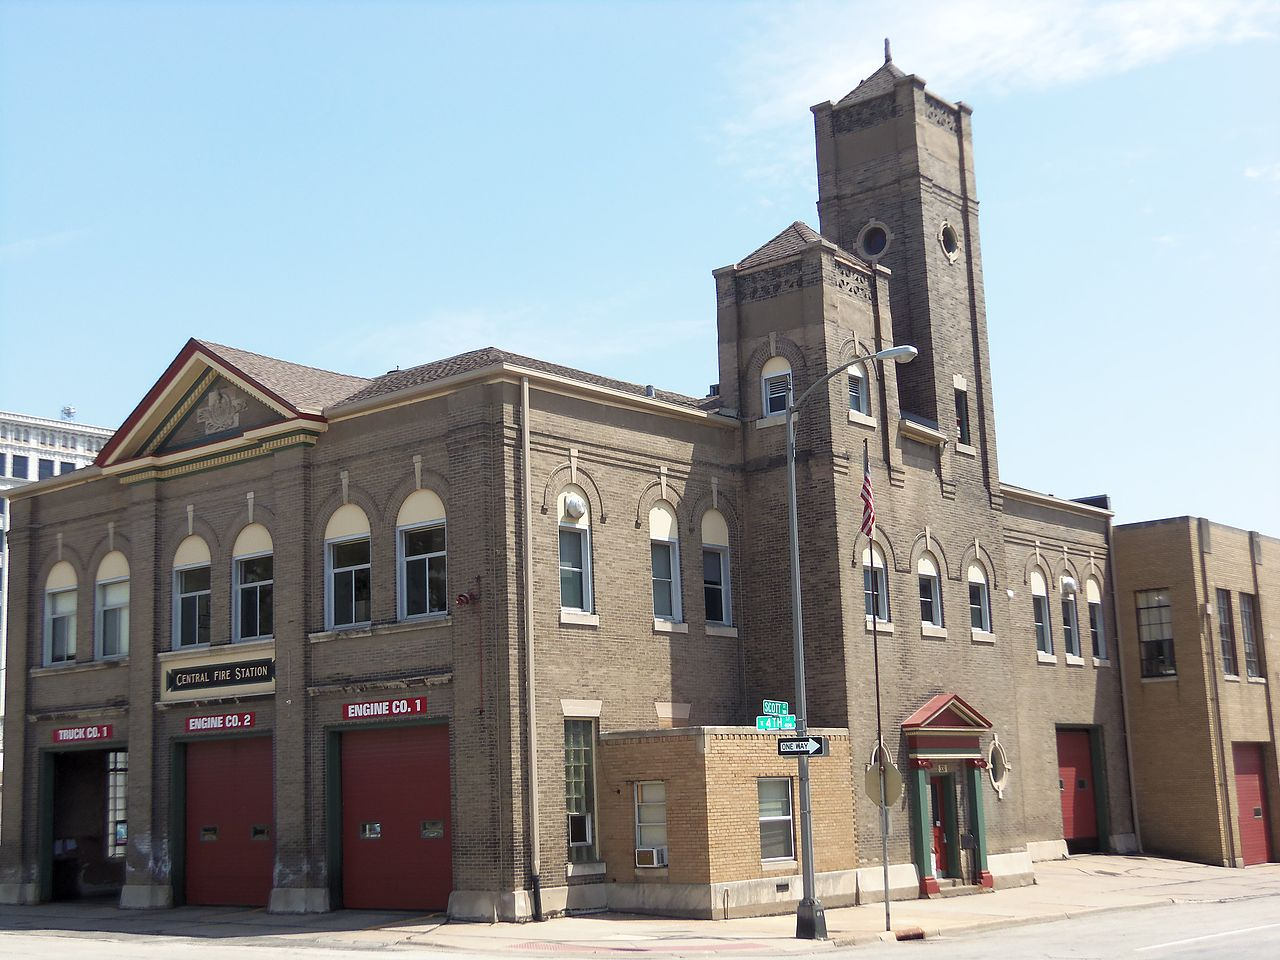 Central Fire Station was built in 1901. It is the oldest continuously used fire station west of the Mississippi River.